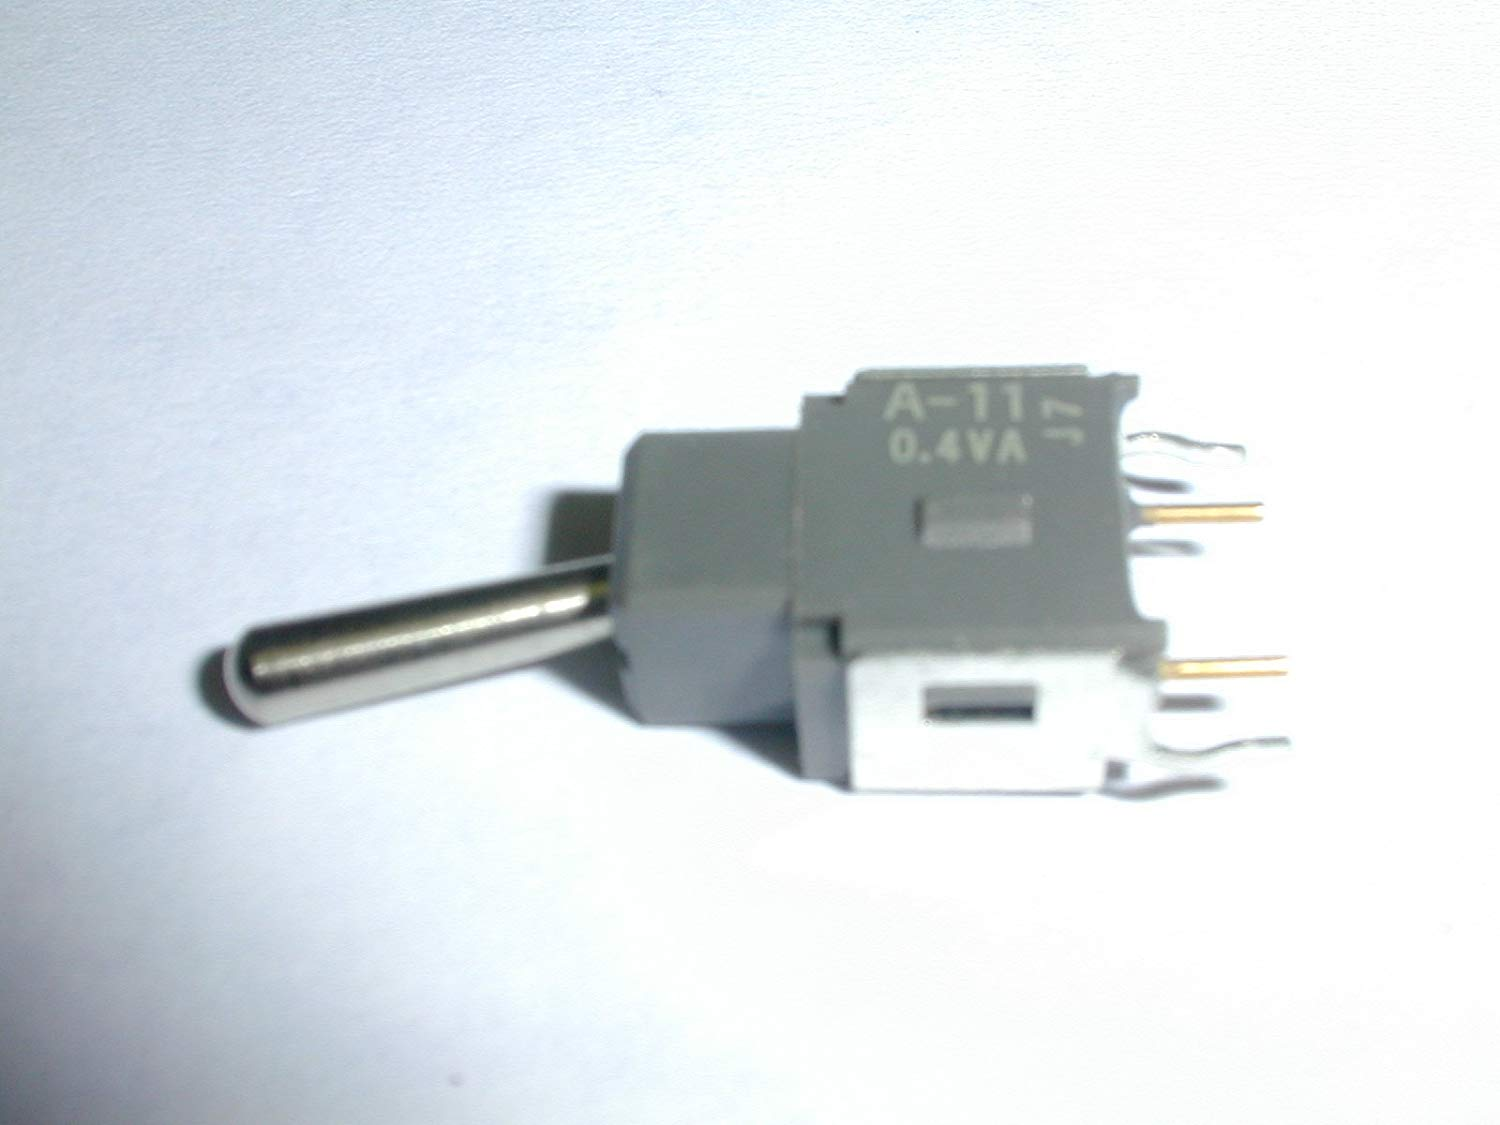 Cheap Switch Toggle Spst Find Deals On Line At Off With Wire Leads Details About Get Quotations Nkk A11ab Sub 28vdc Ac